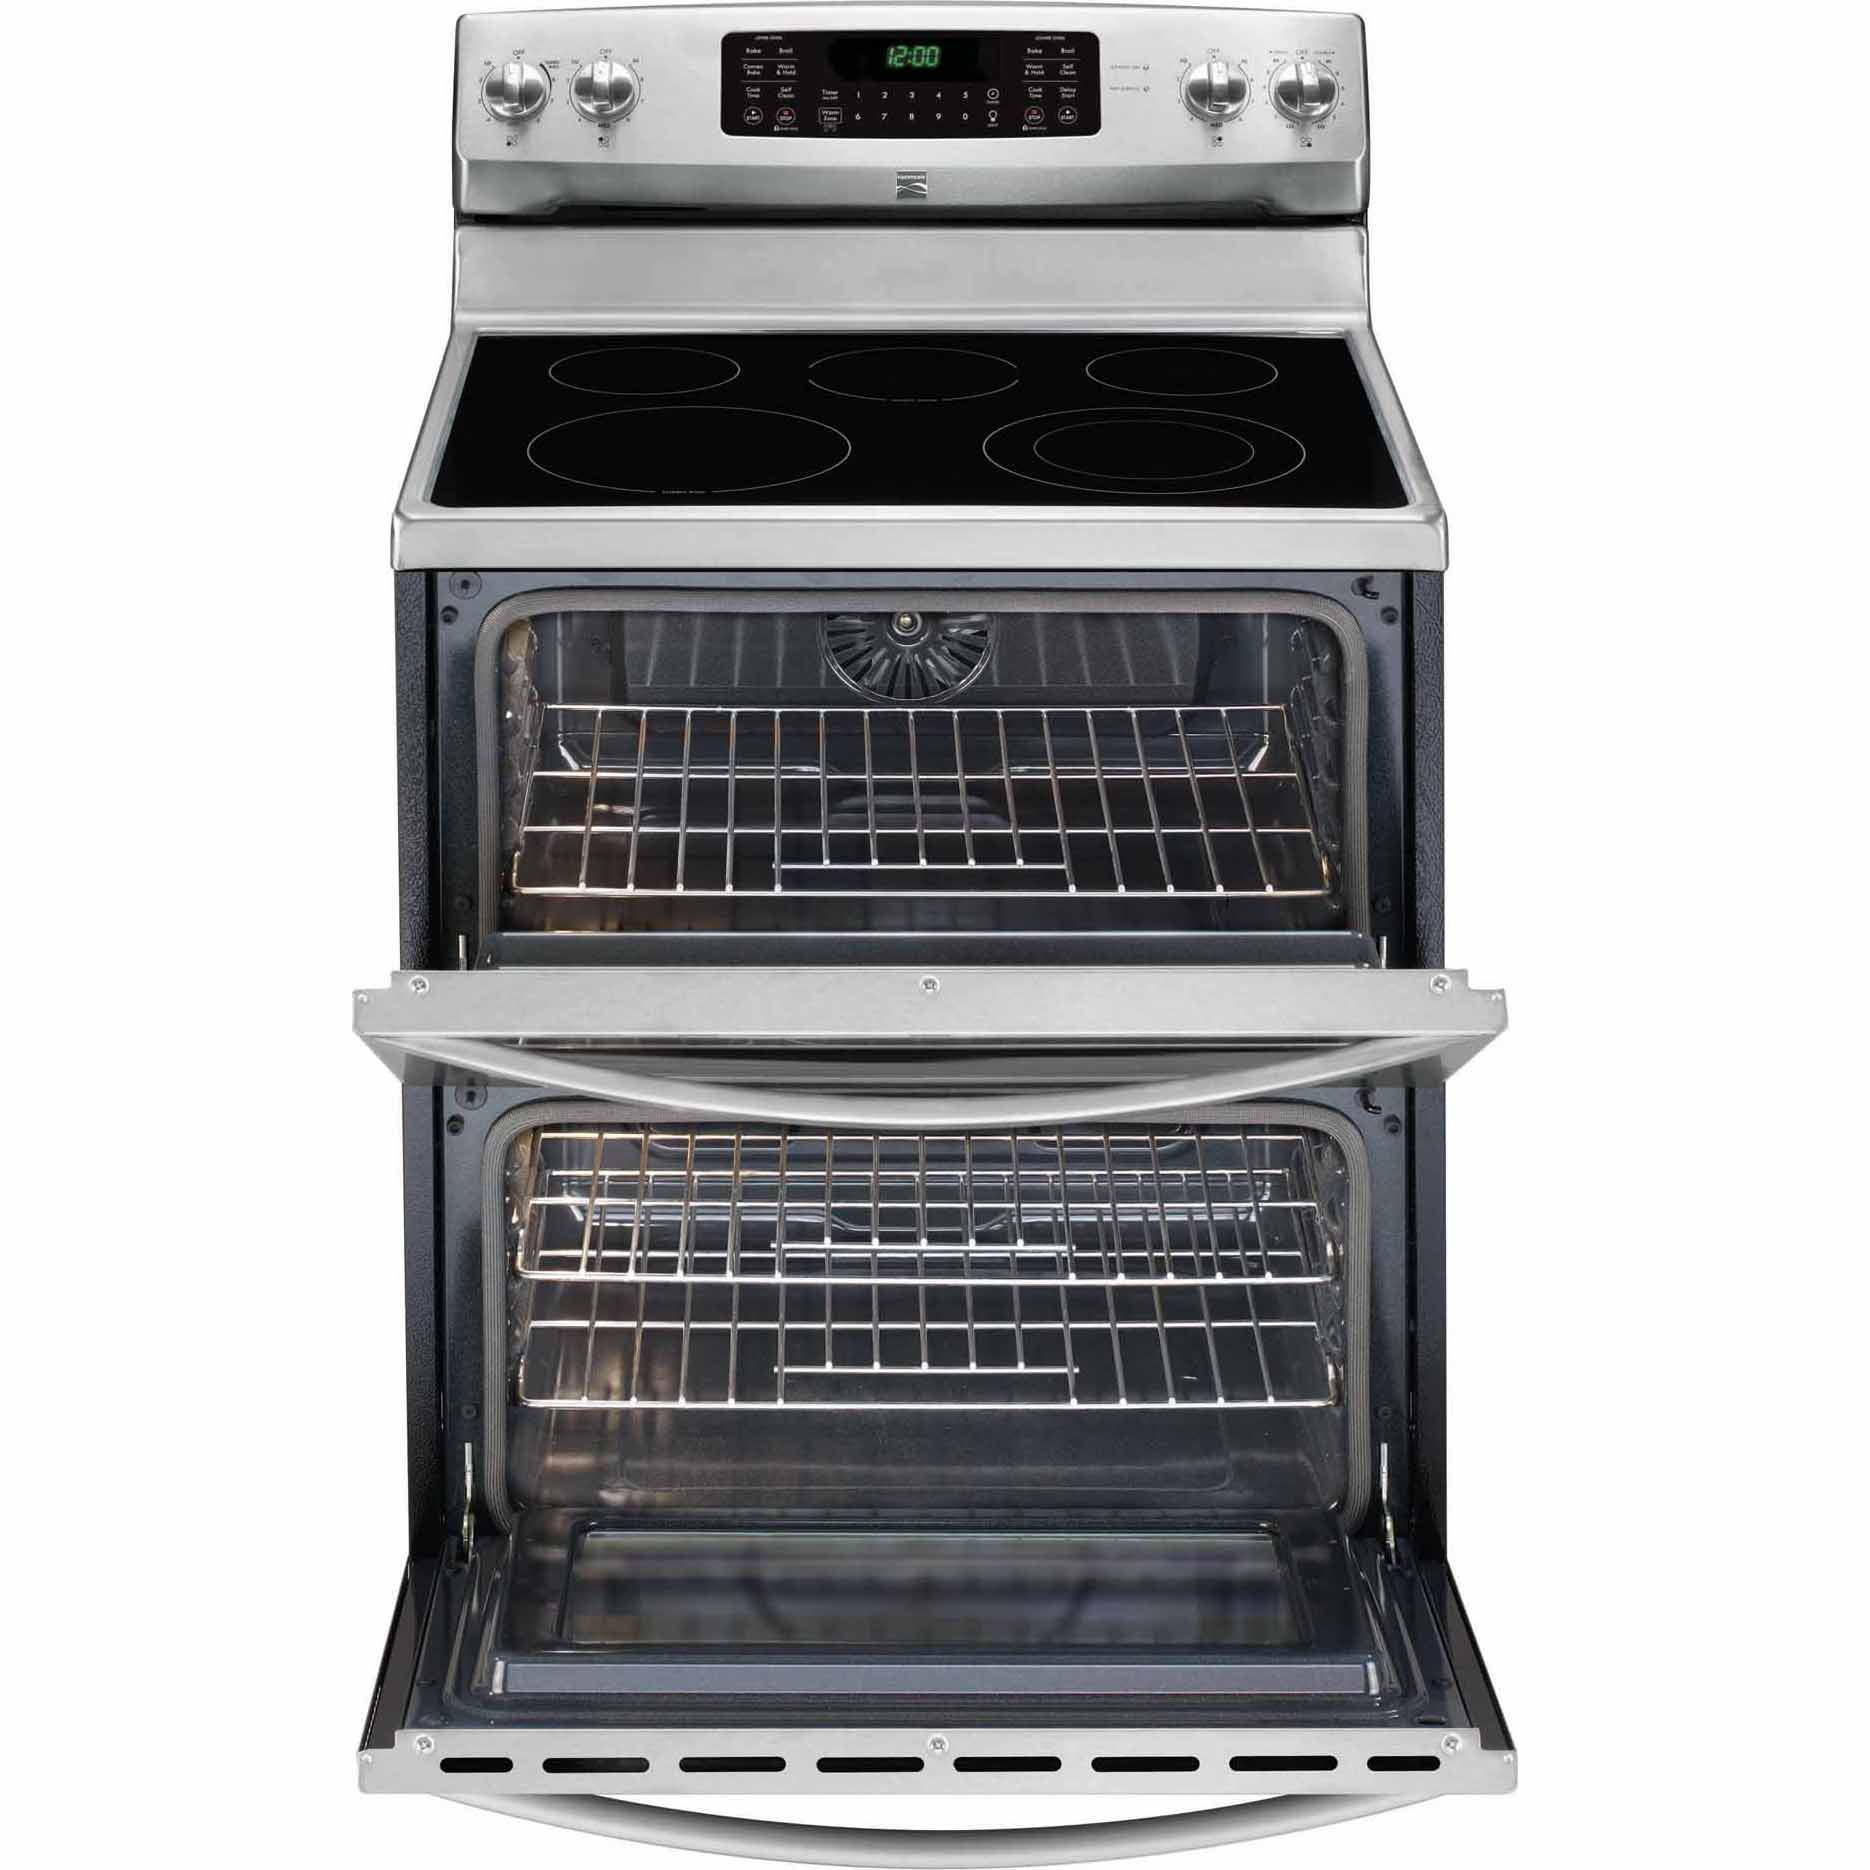 Kenmore 97223 7.2 cu. ft. Double-Oven Electric Range w/ Convection - Stainless w Black Trim